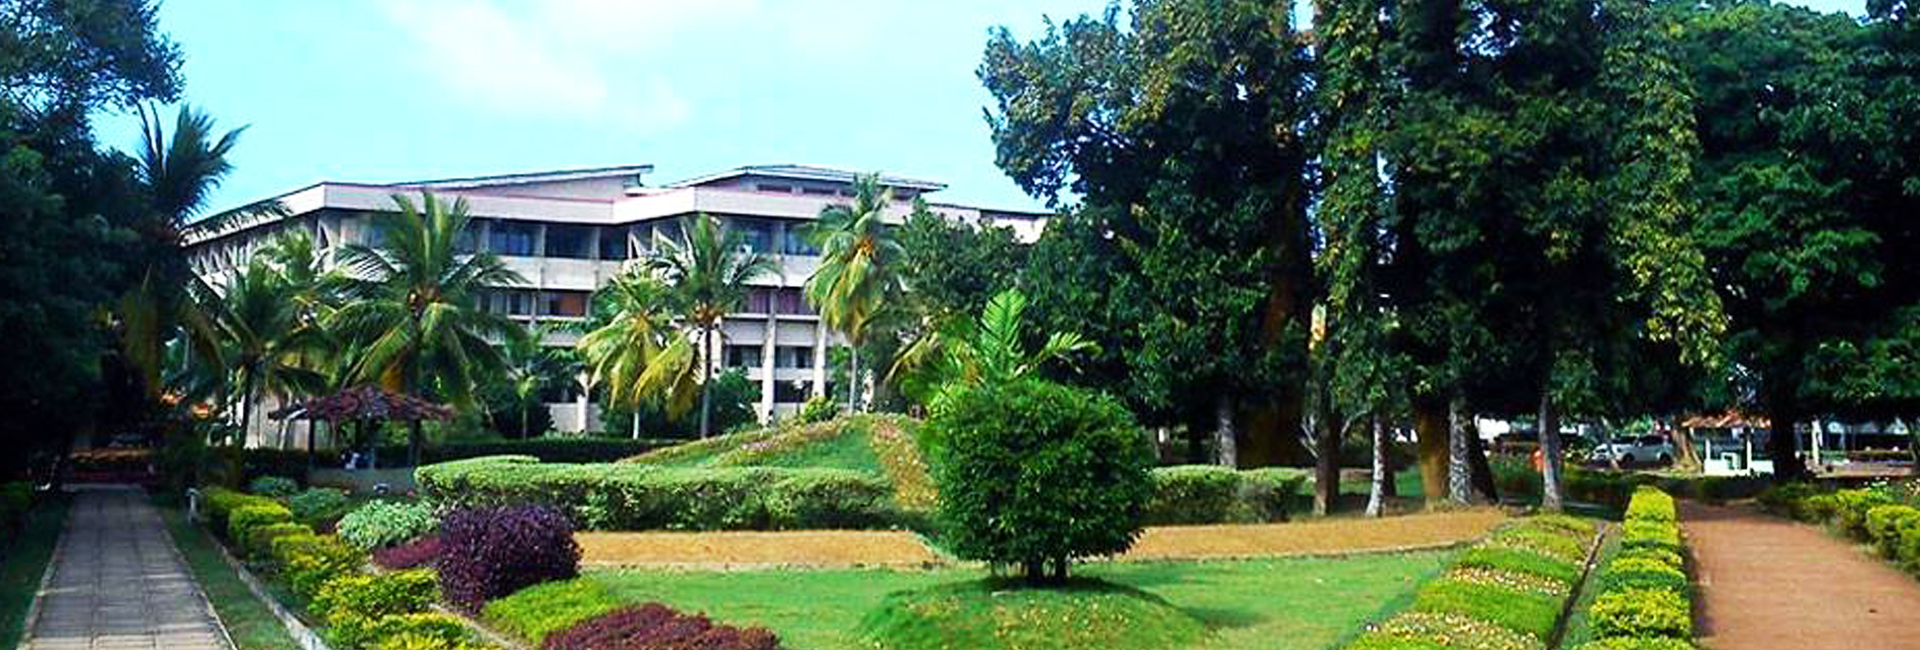 University of Sri Jayawardanapura, Sri Lanka